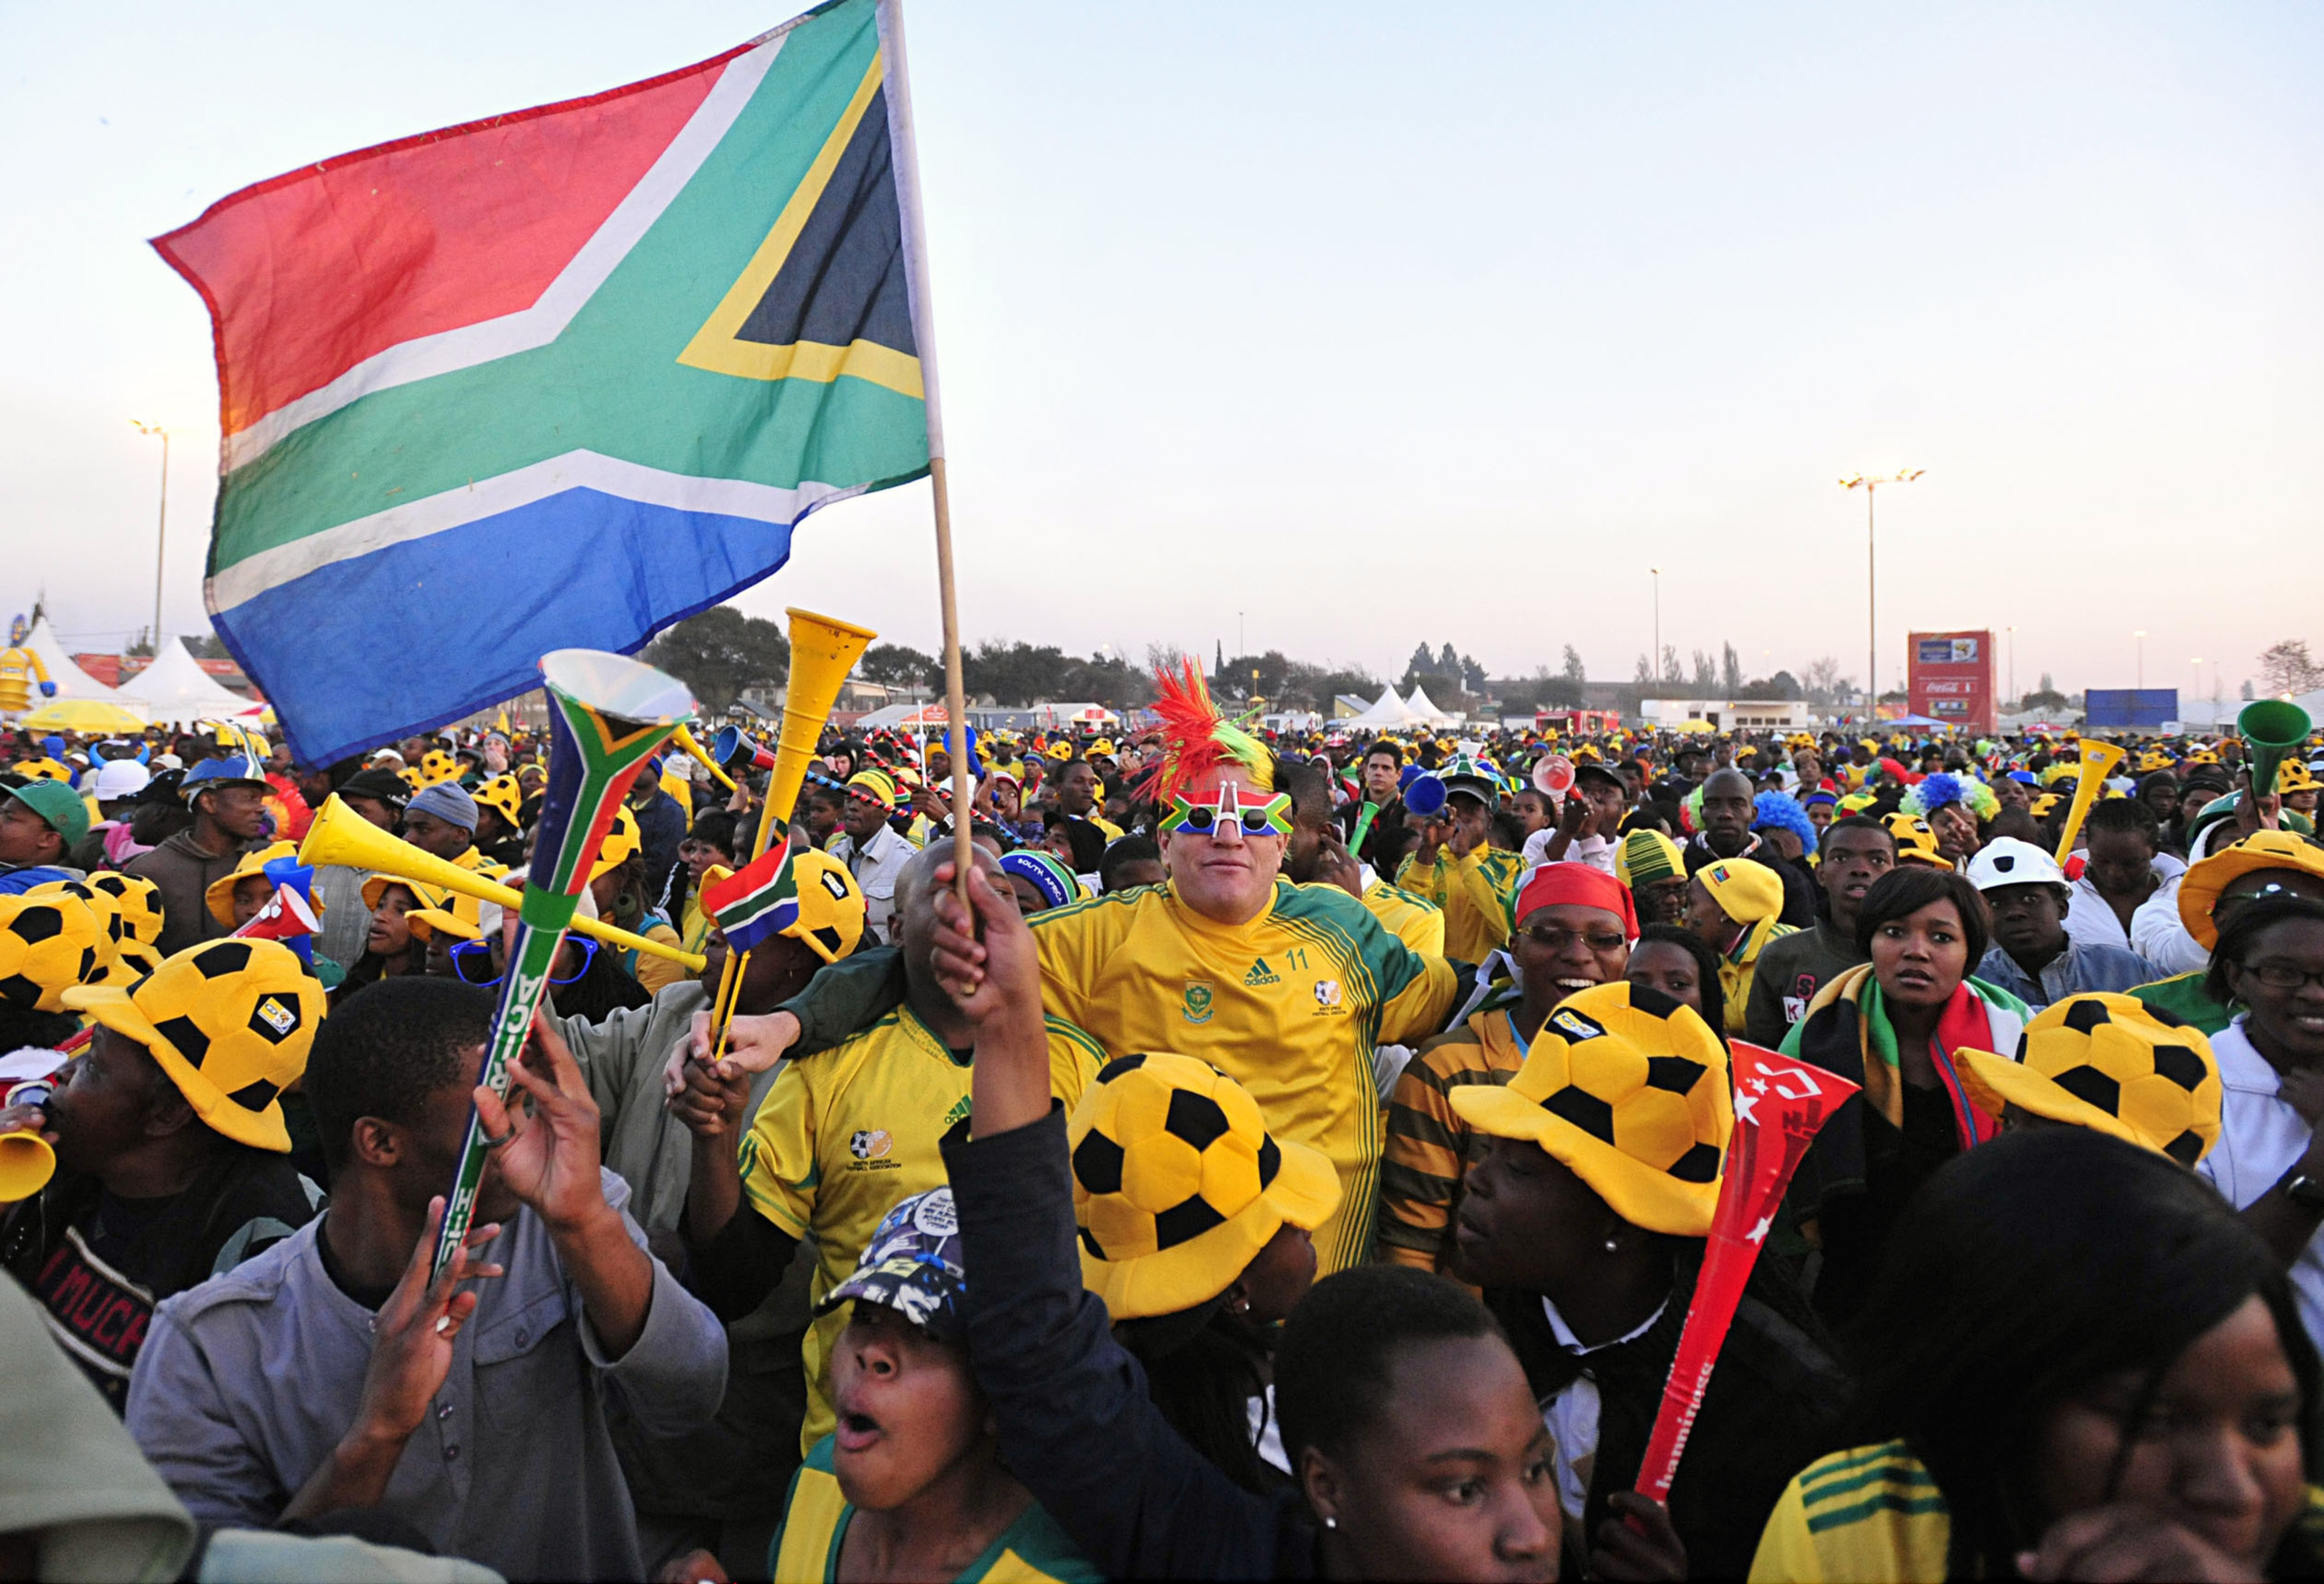 Four Years On, South Africa's World Cup Has Failed to Live Up to Promises